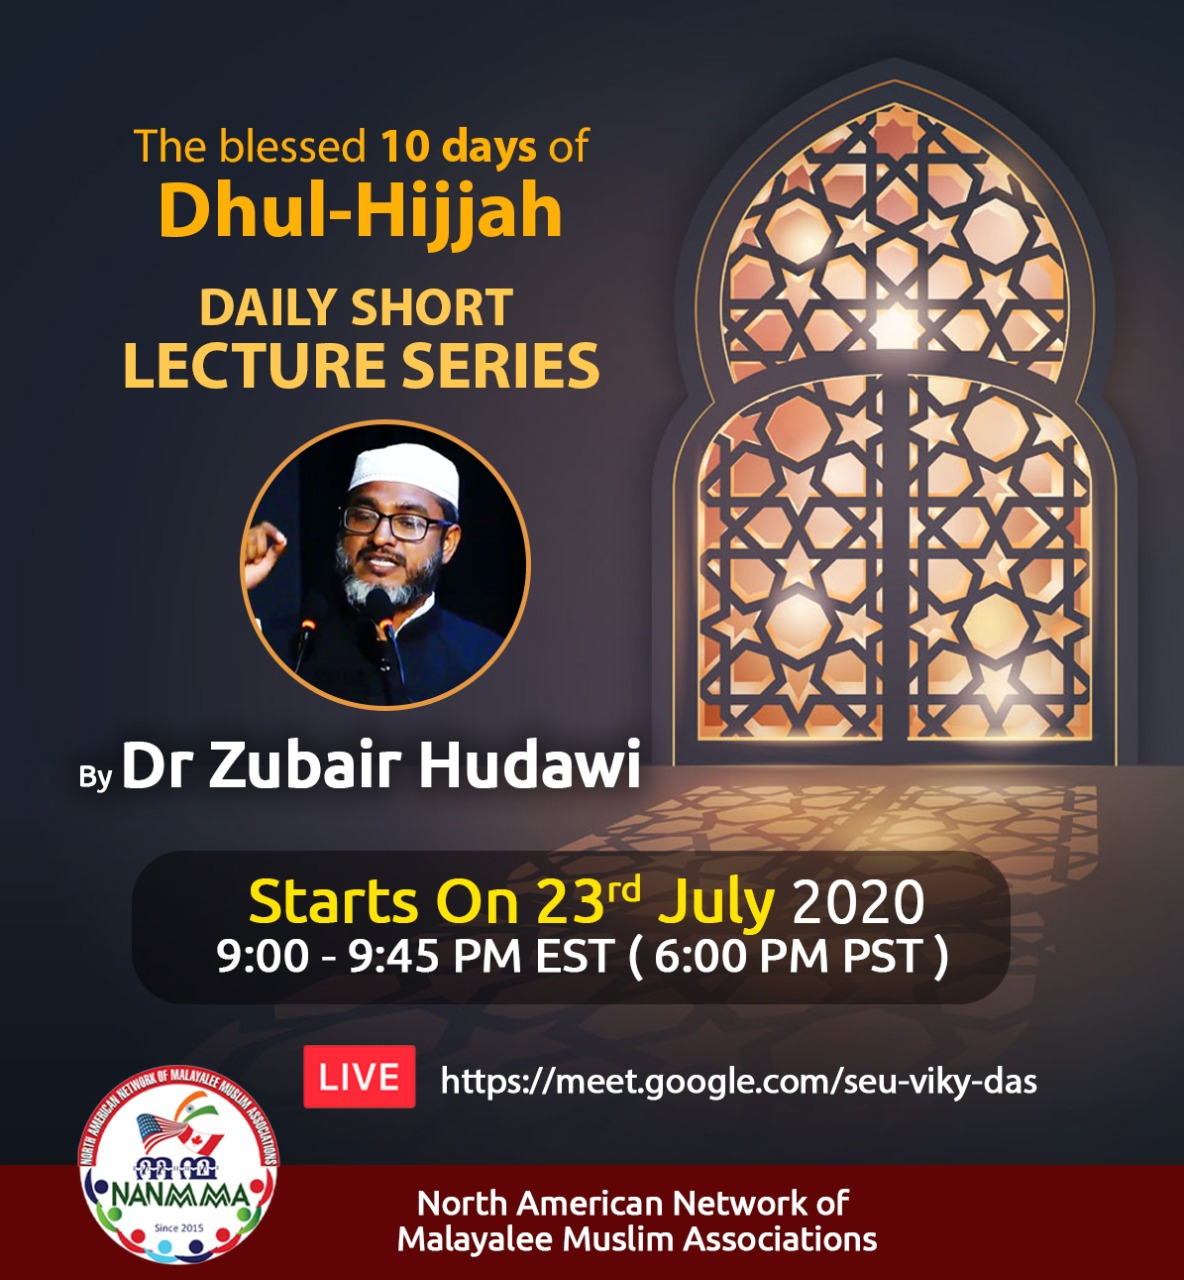 DHULHIJJAH DAILY SHORT LECTURE SERIES with Dr Zubair Hudawi